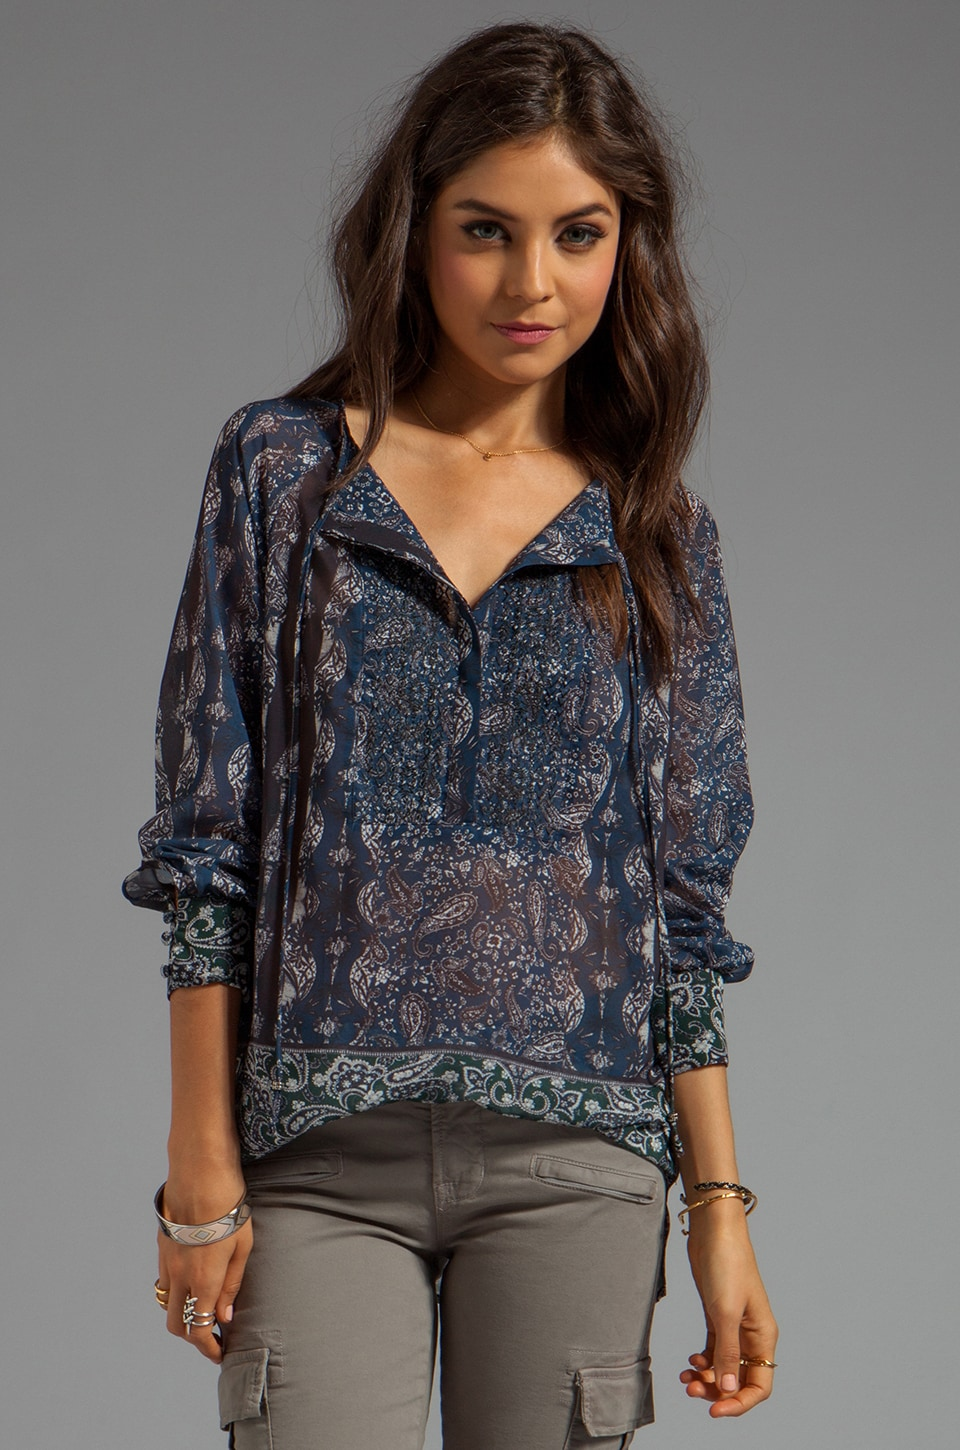 Sanctuary Soft Wovens Embroidery Tunic in Blue Paisley